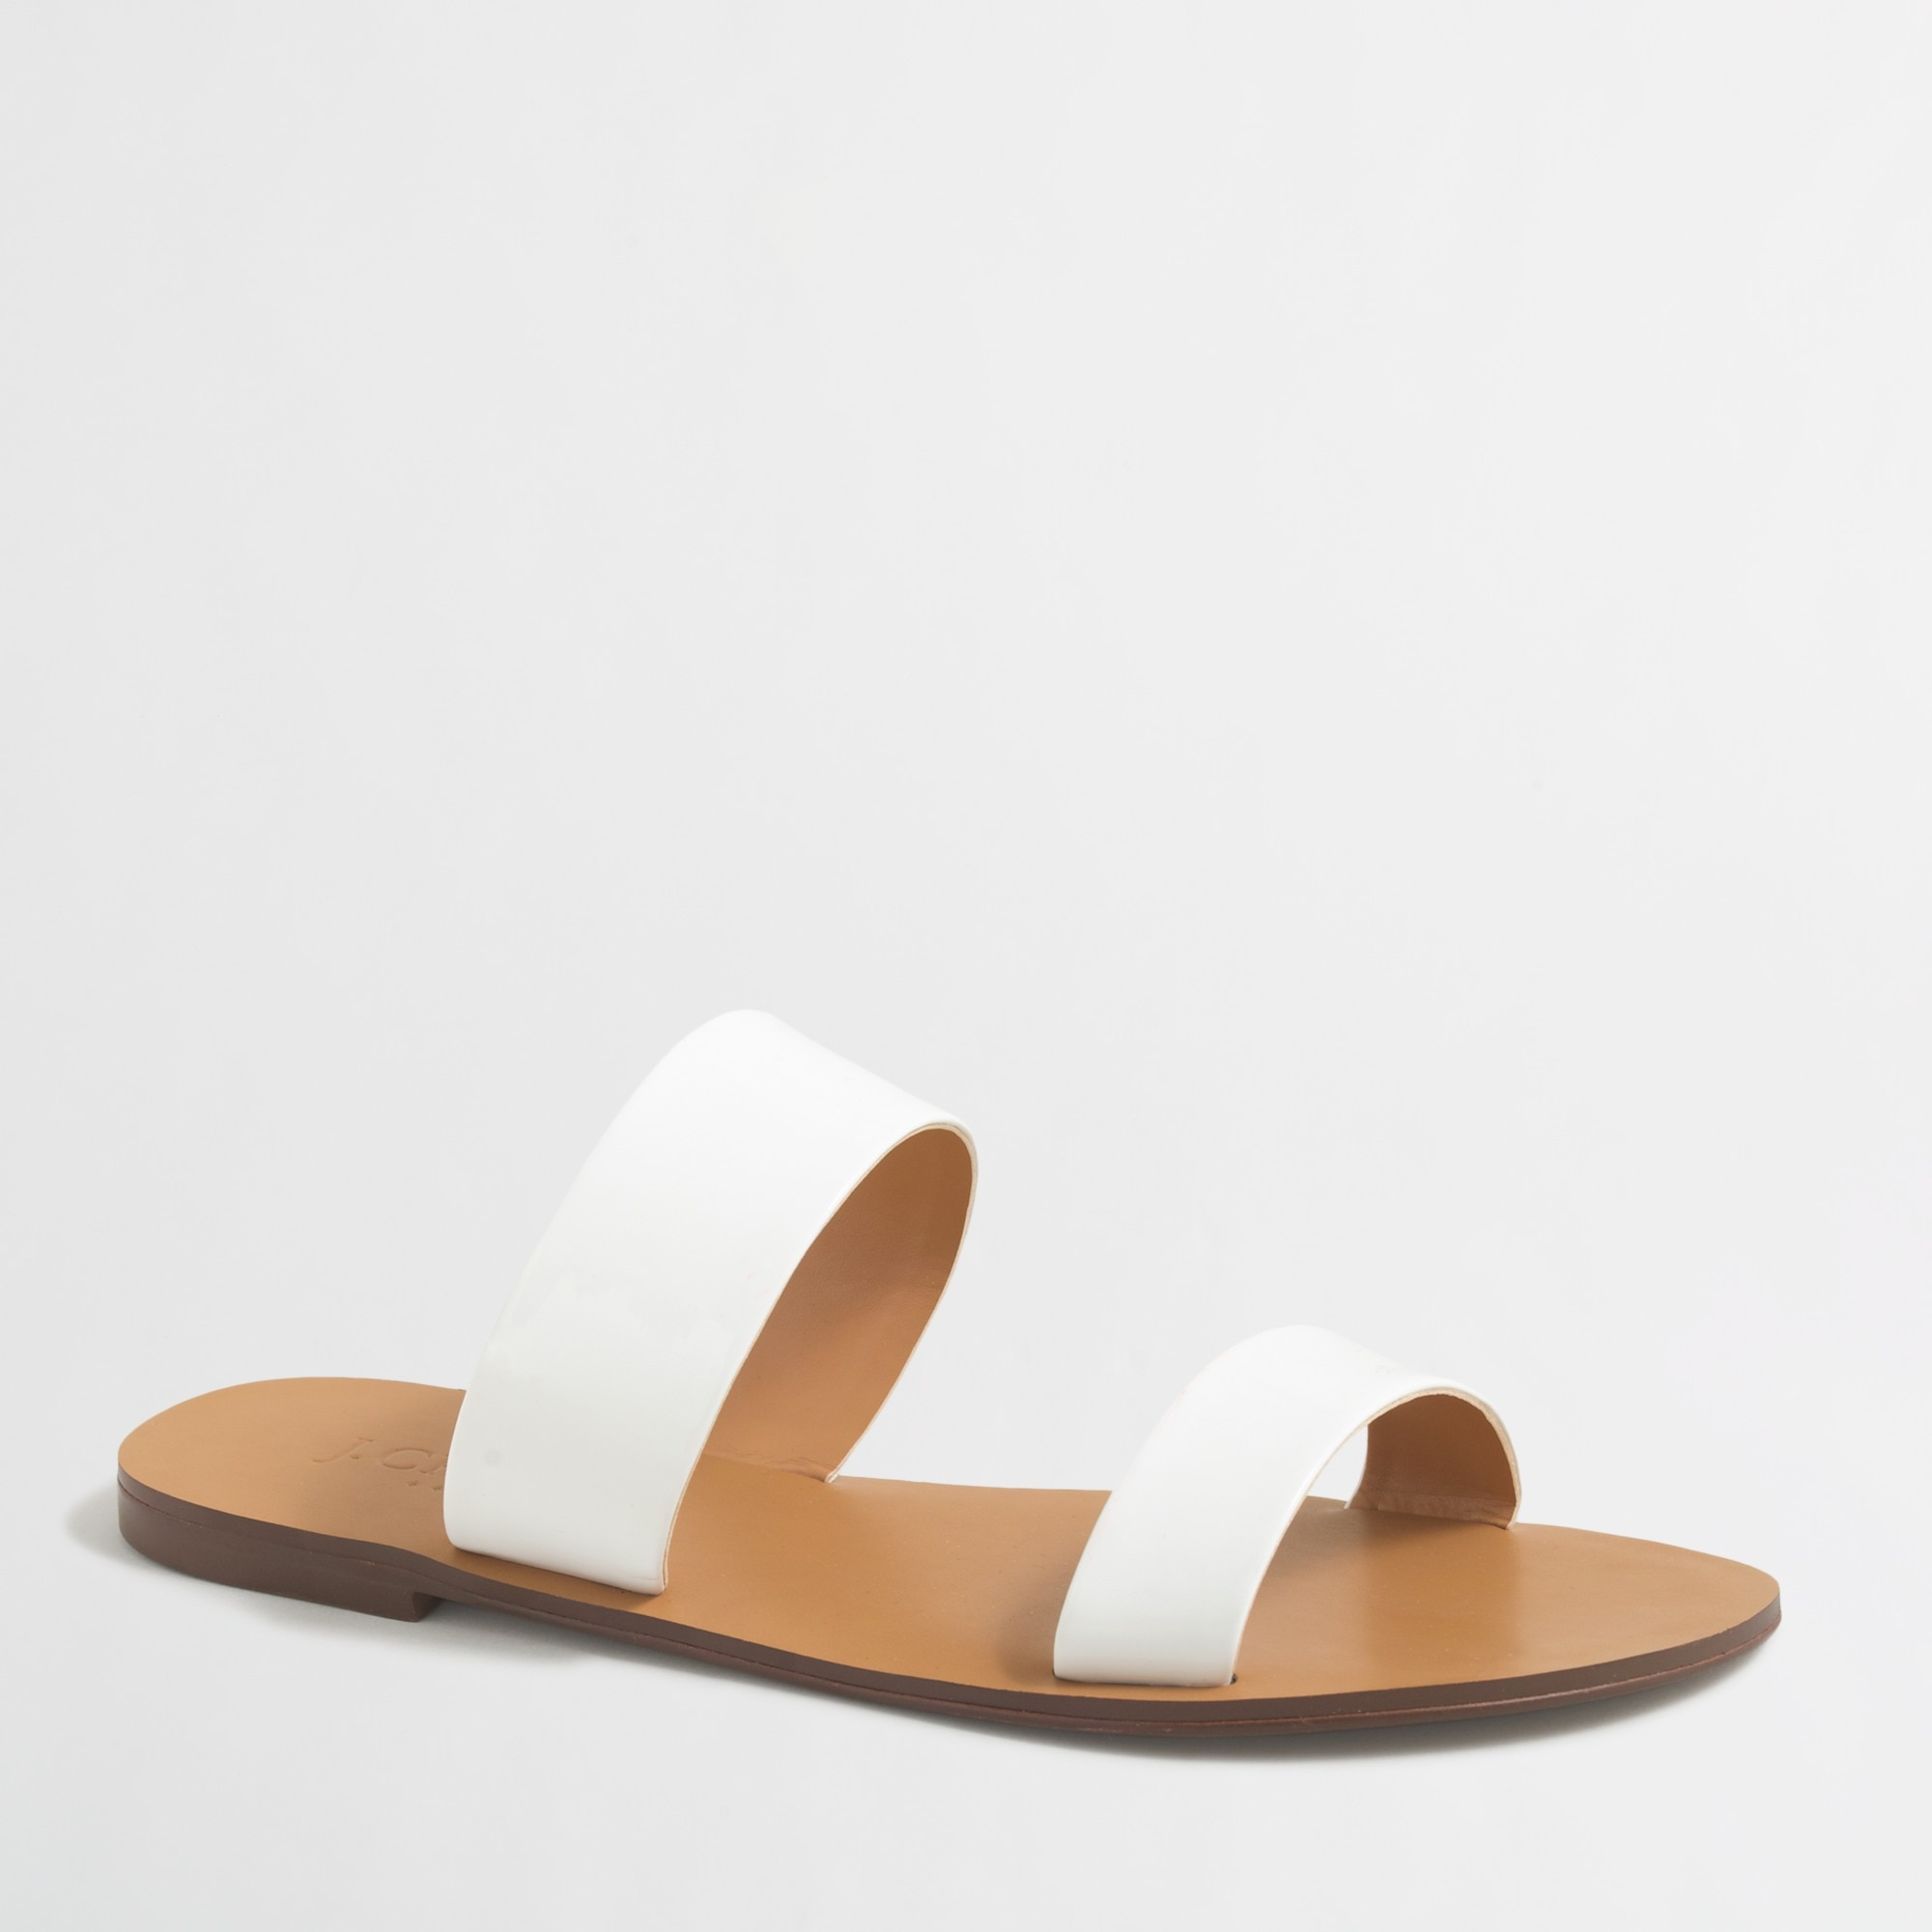 patent boardwalk sandals : factorywomen sandals